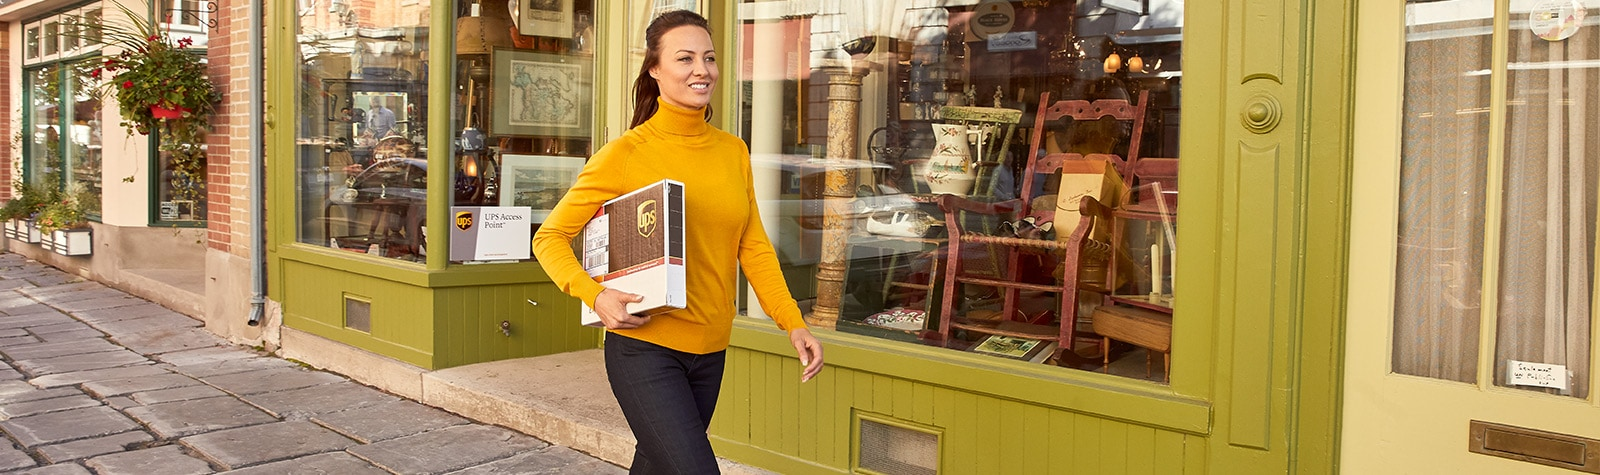 Woman carrying UPS package